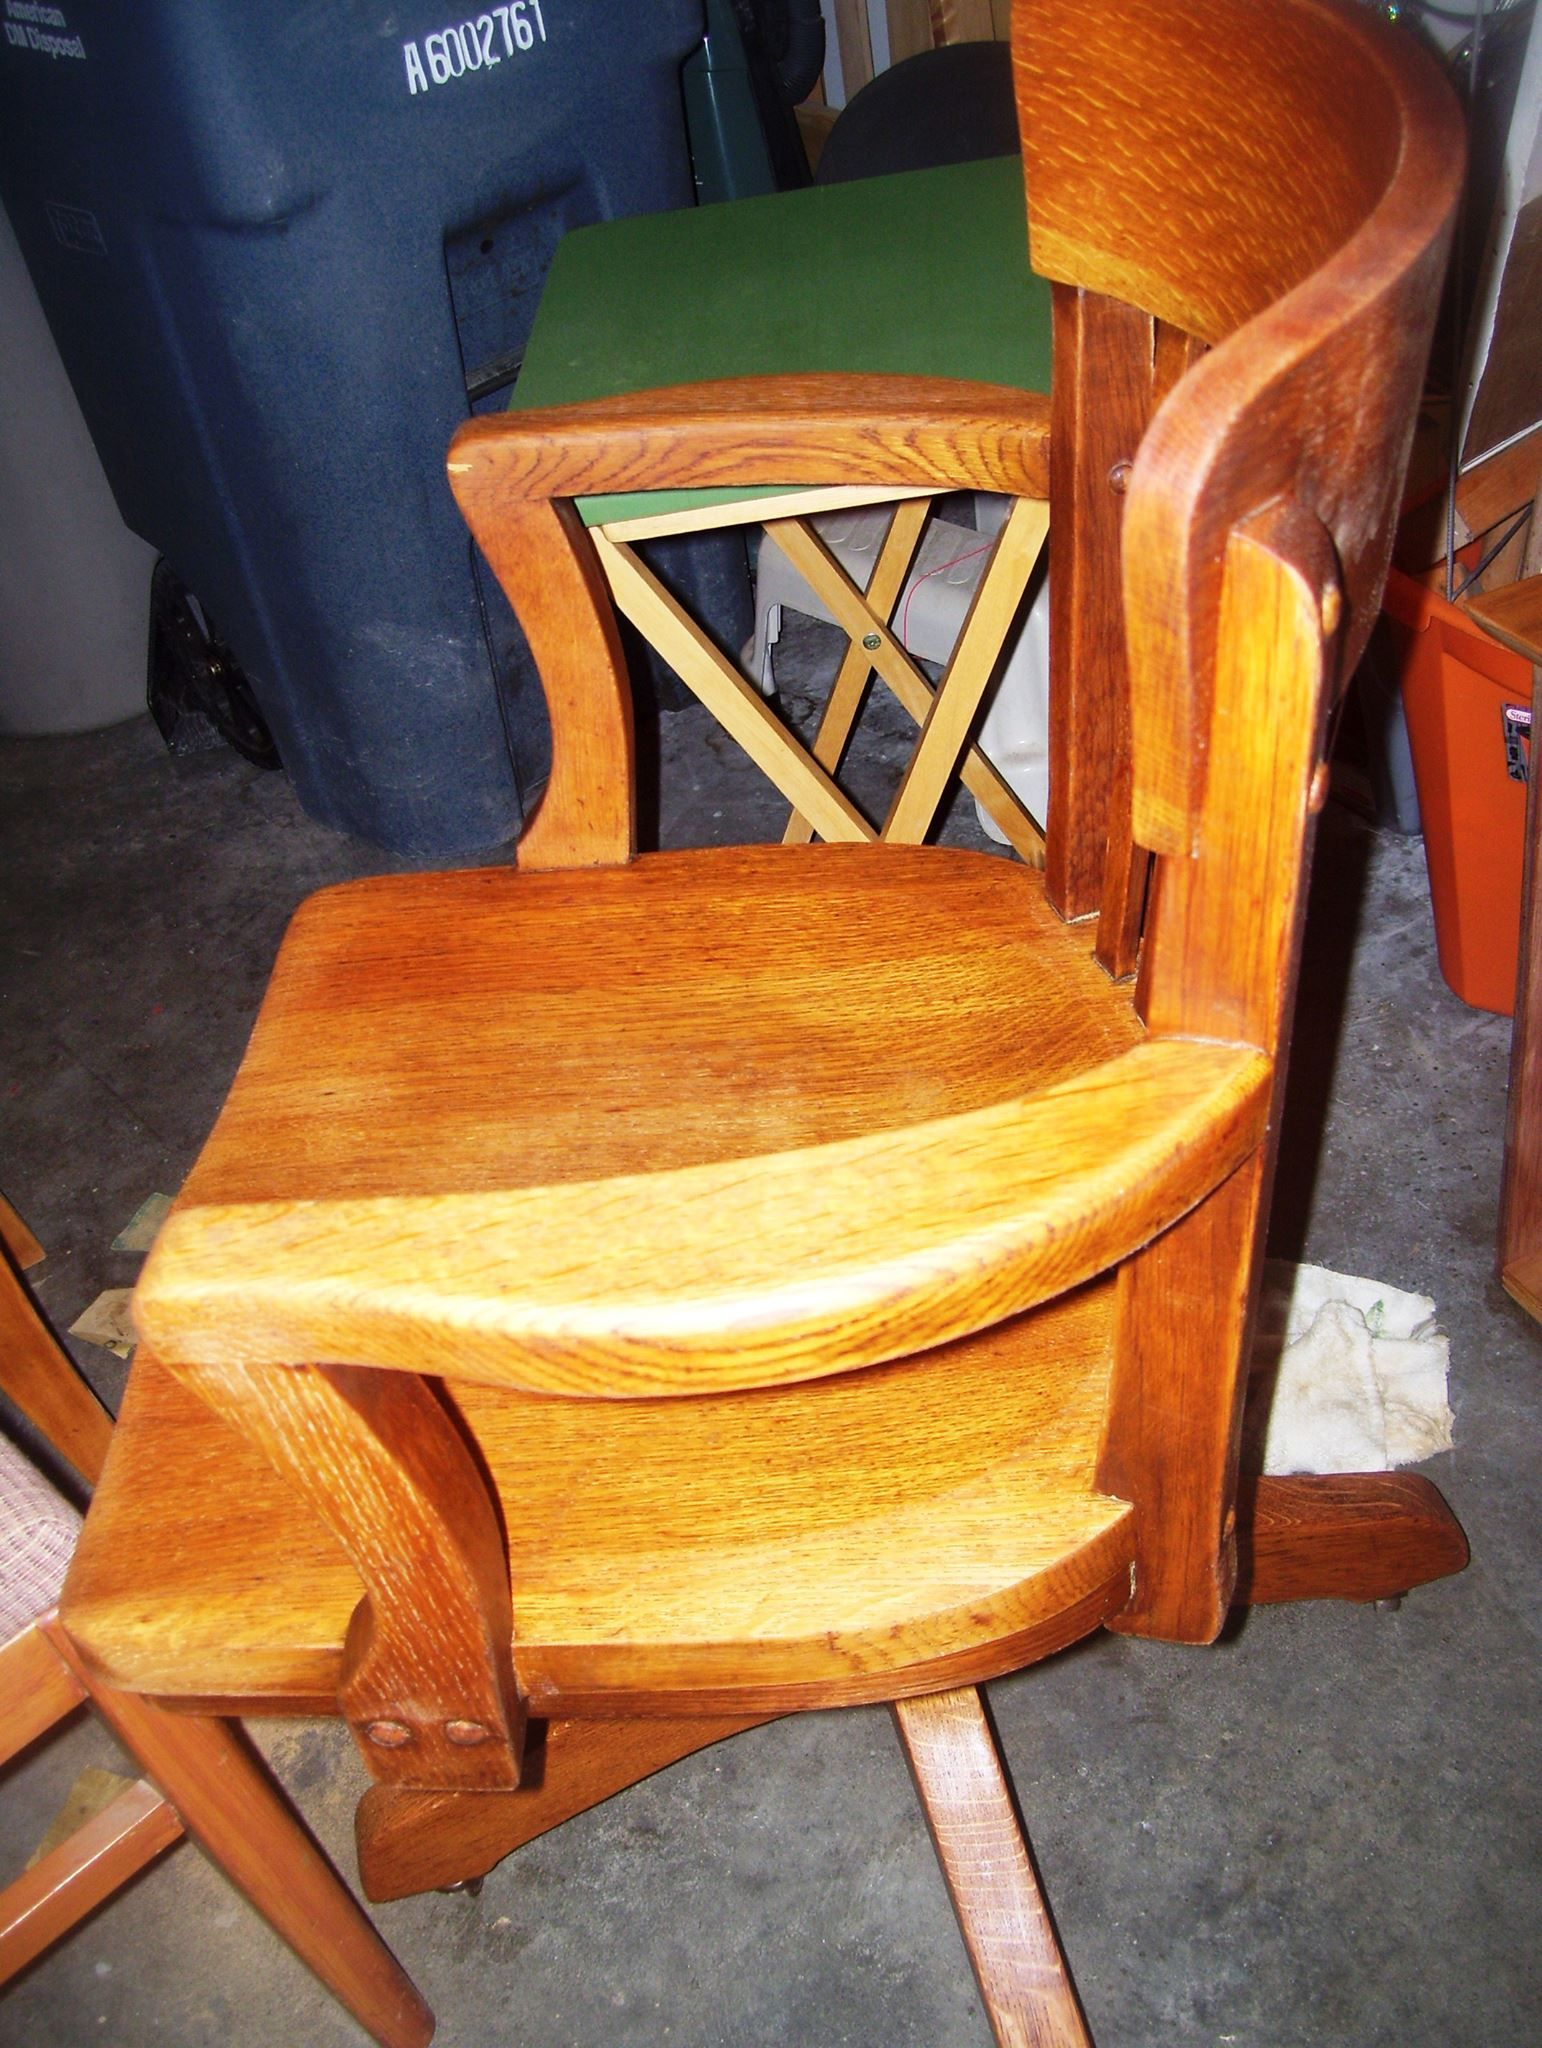 Sanded and cleaned up the old desk chair my dad had in college.